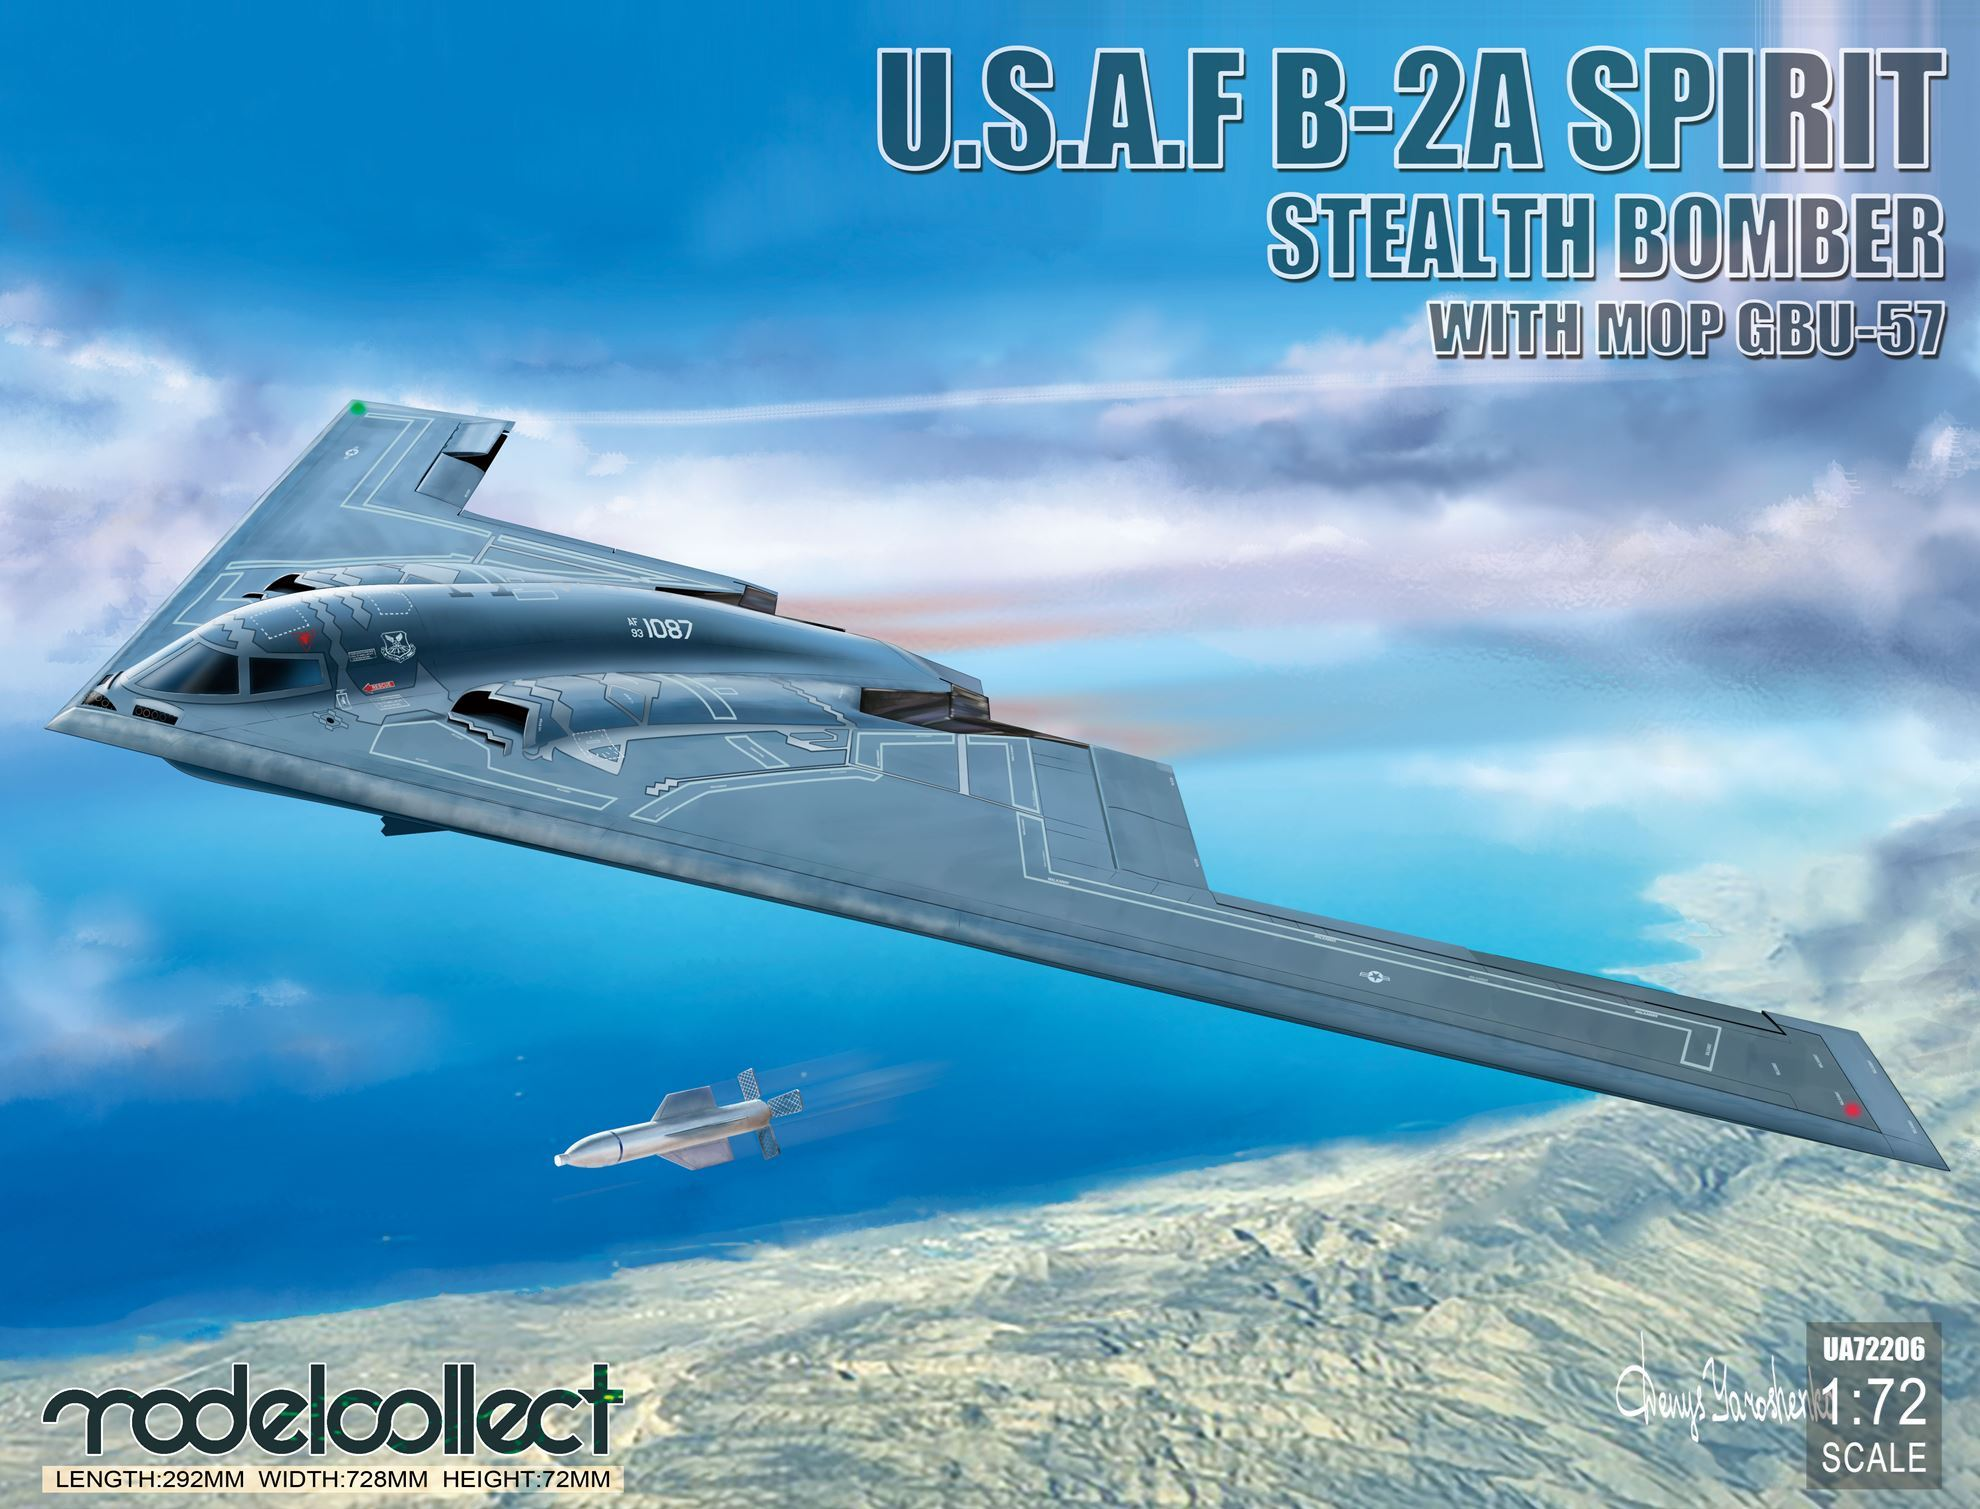 ModelCollect USAF B-2A Spirit Stealth Bomber with Mop GBU-57